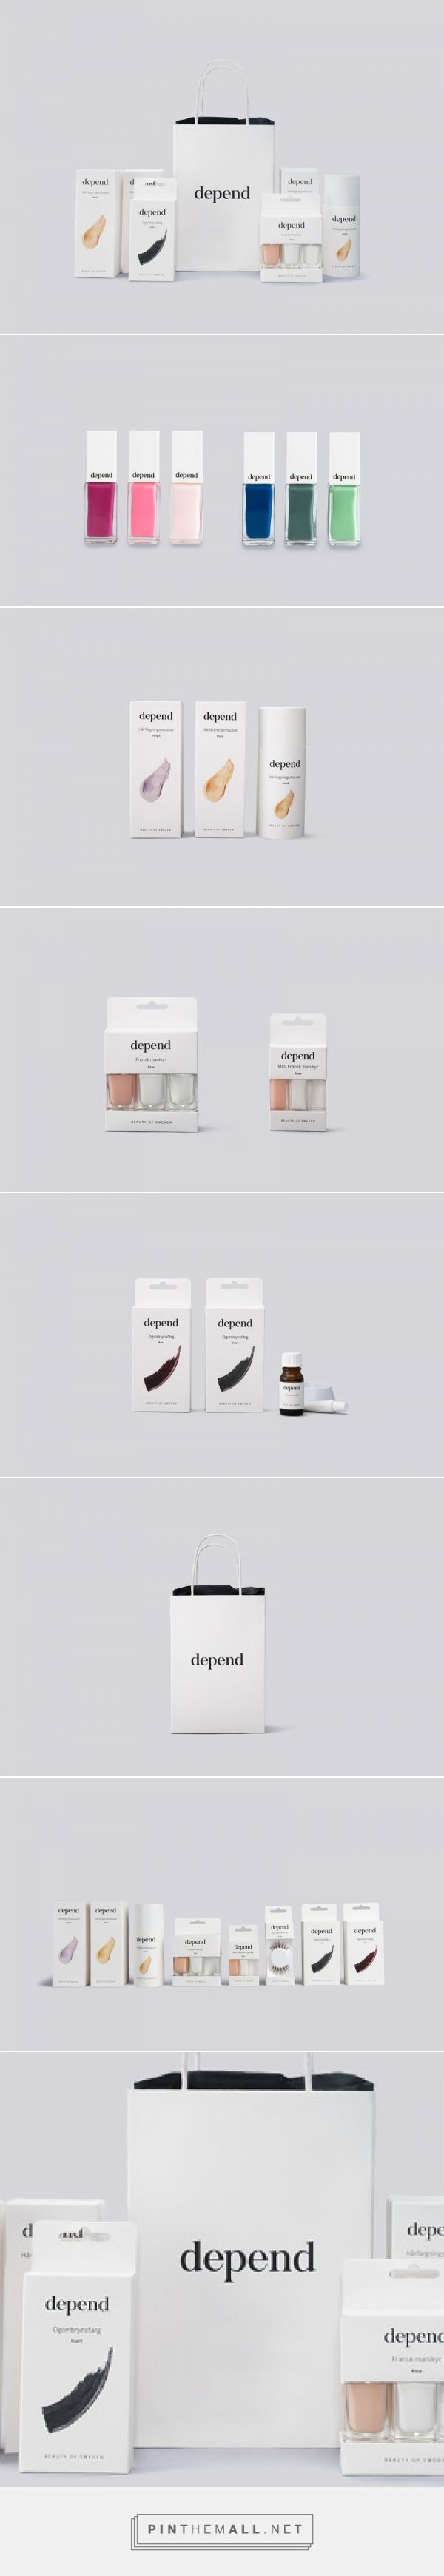 Depend Cosmetics AB - Sandra Kristensson curated by Packaging Diva PD. Rebranding and packaging project for Swedish company Depend Cosmetics AB.